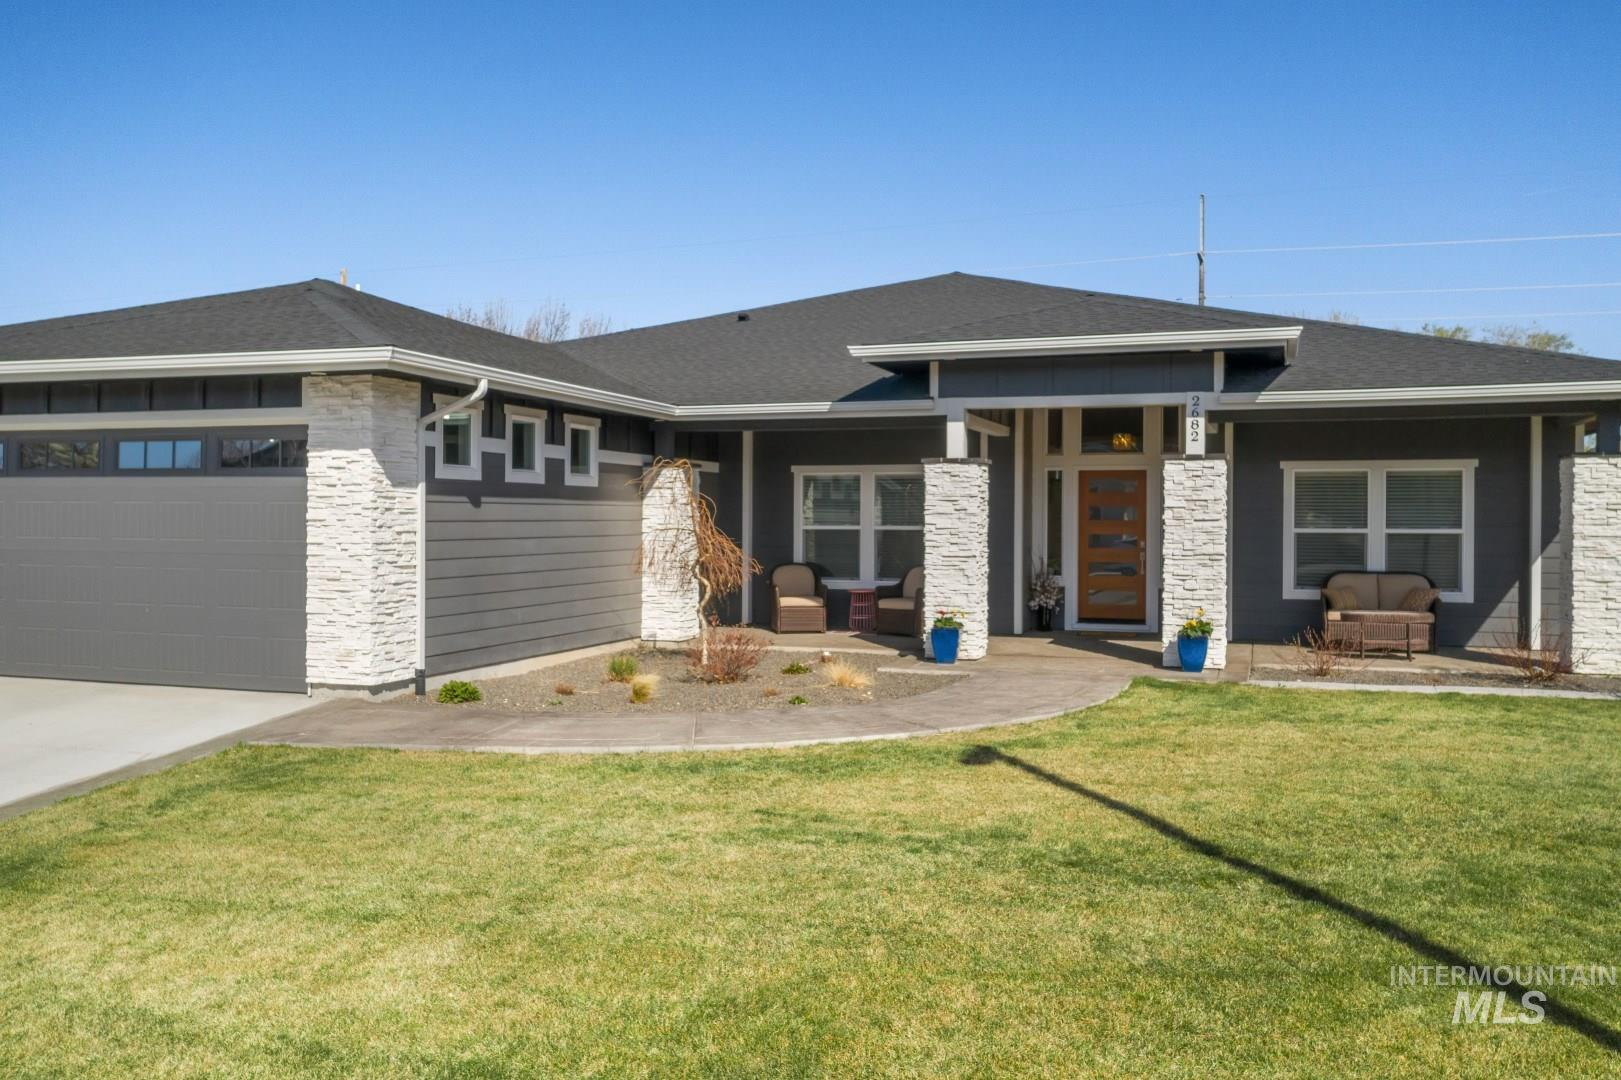 2682 S Simsbury Pl Property Photo - Boise, ID real estate listing